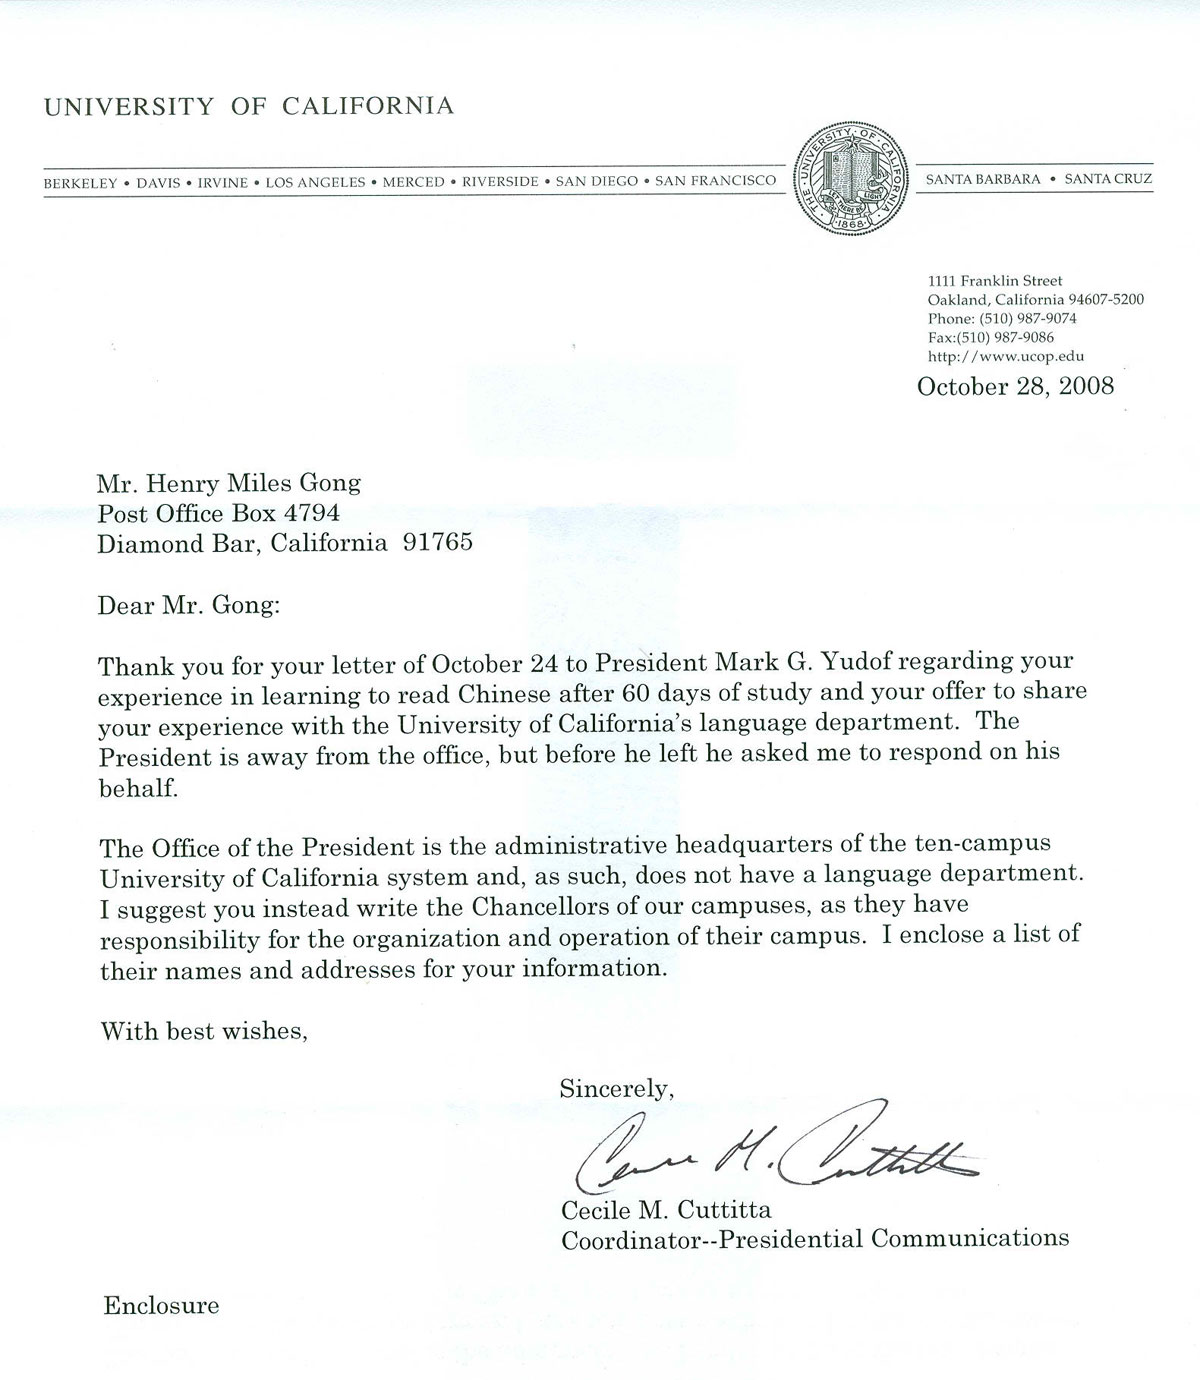 University of California Review Letter